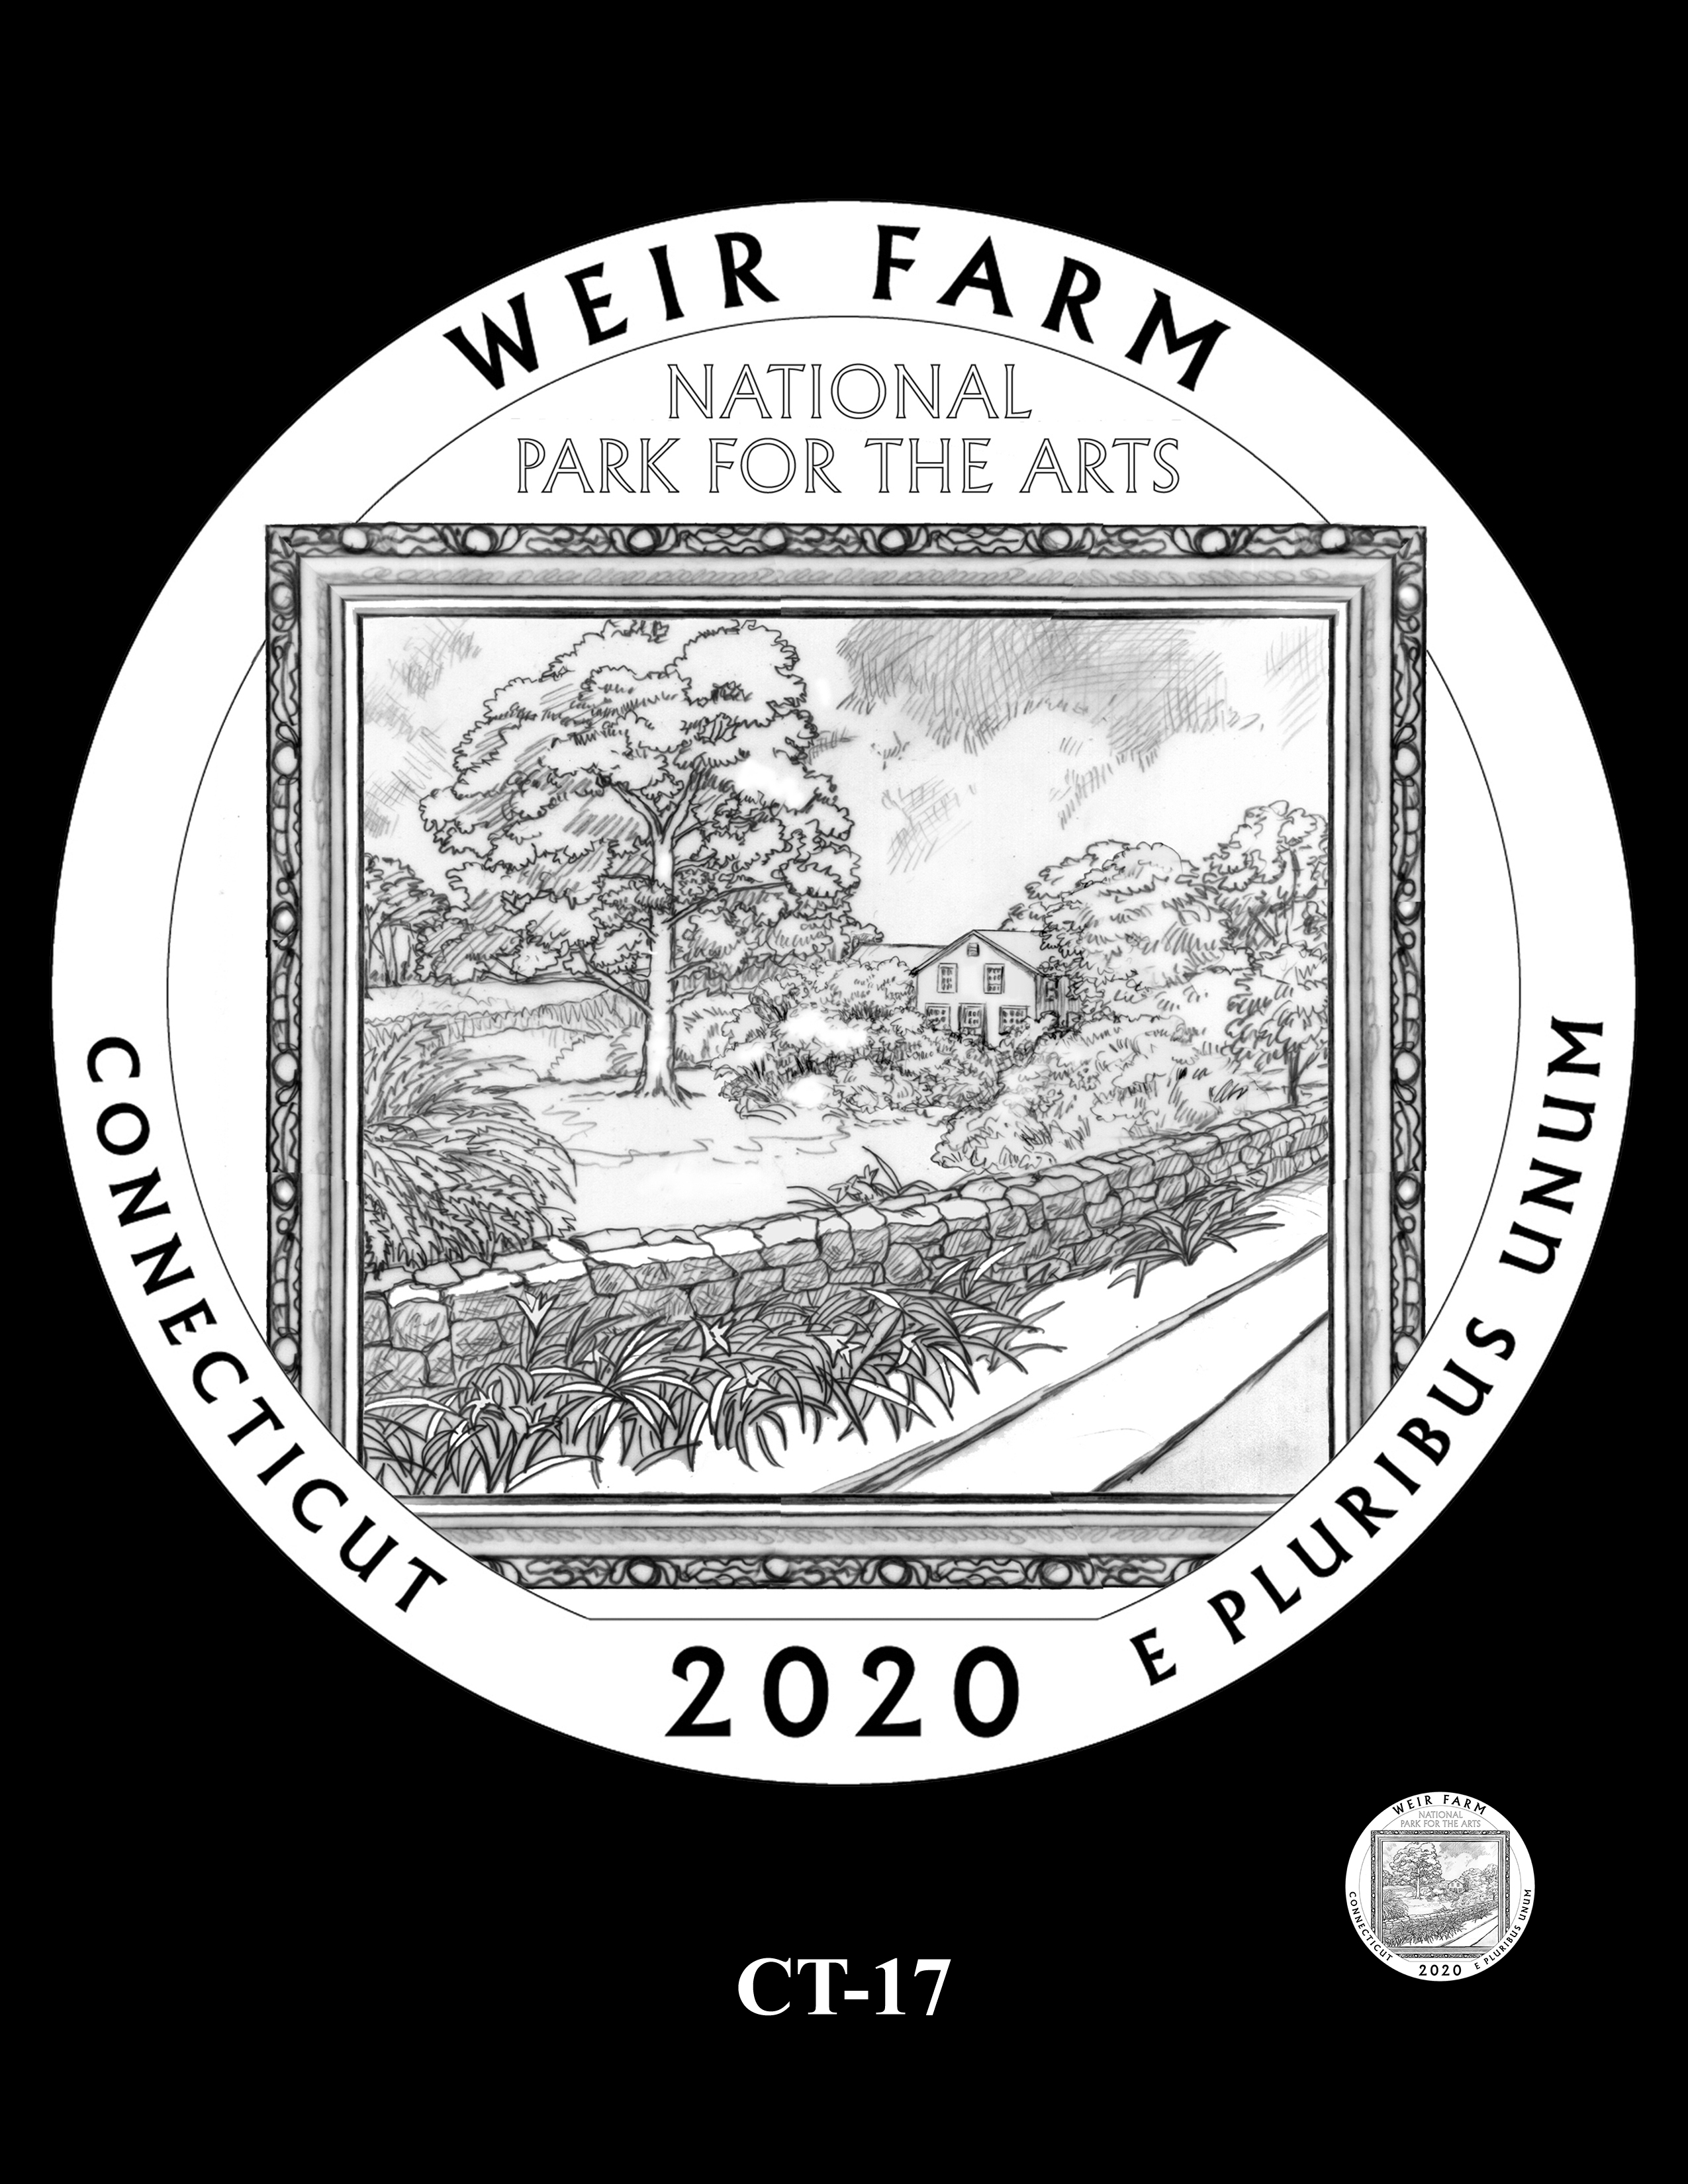 CT-17 -- 2020 America the Beautiful Quarters® Program